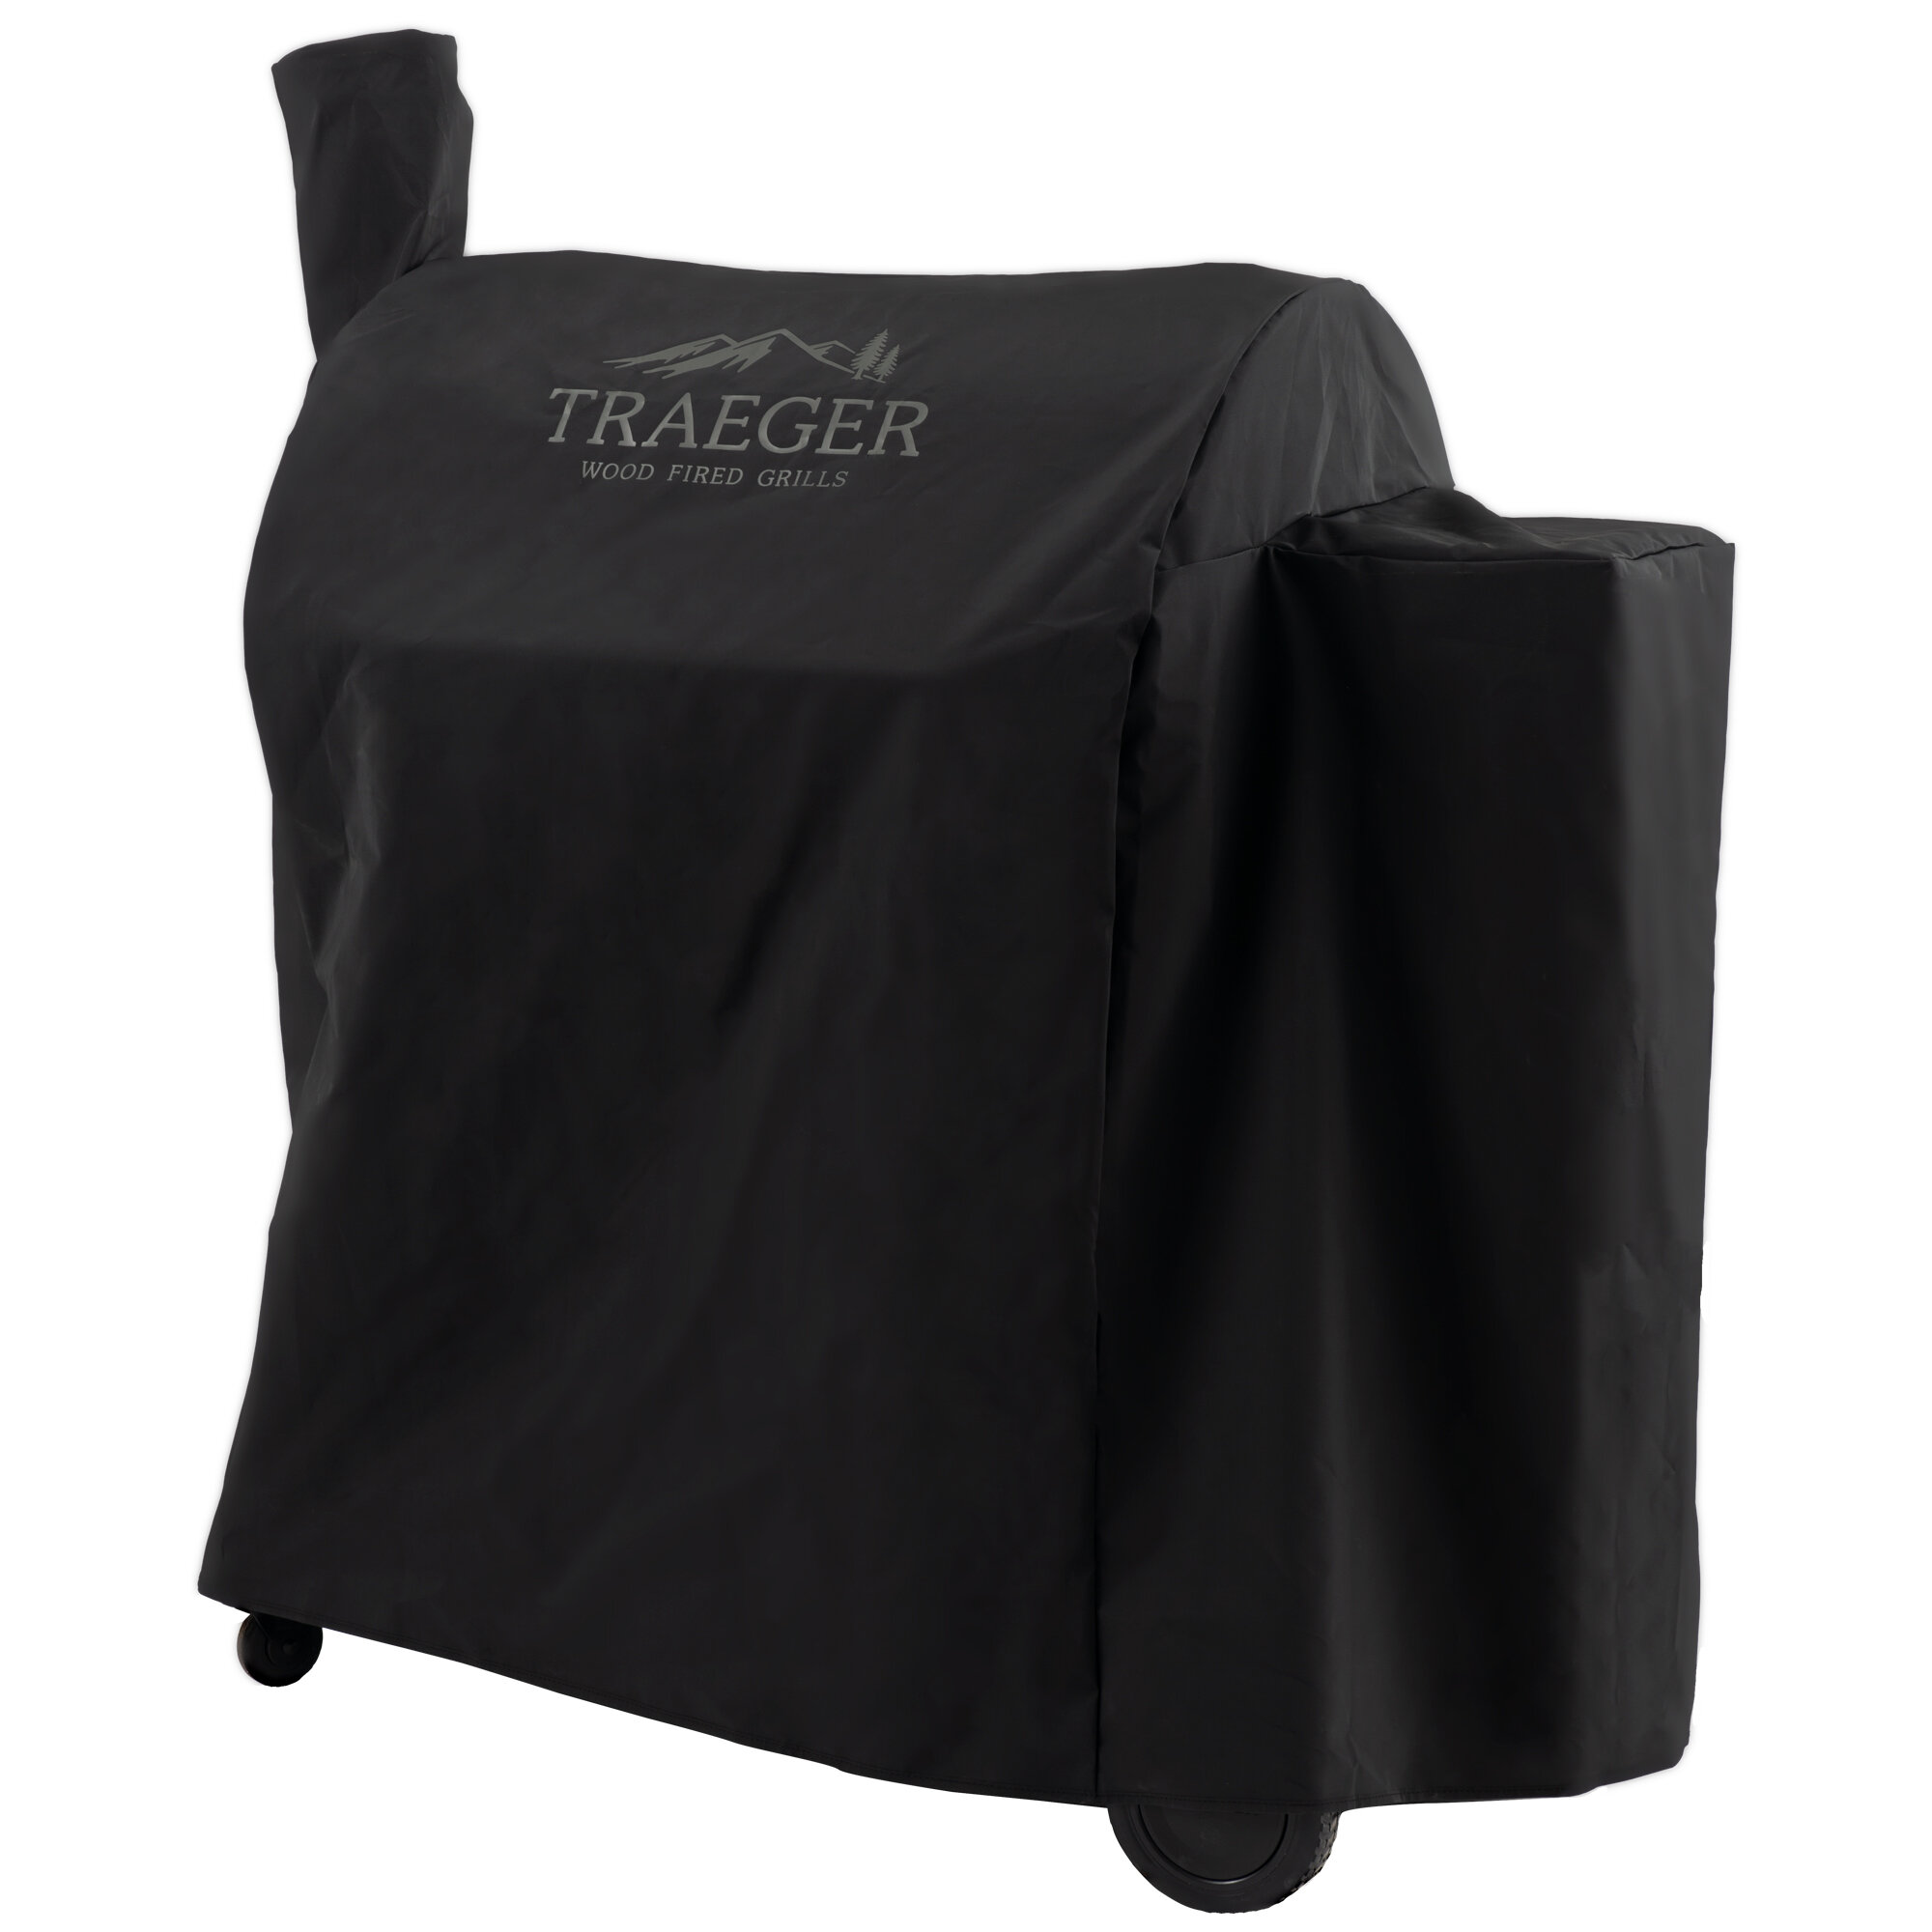 Traeger Pellet Grills Full Length Grill Cover Pro 780 Reviews Wayfair